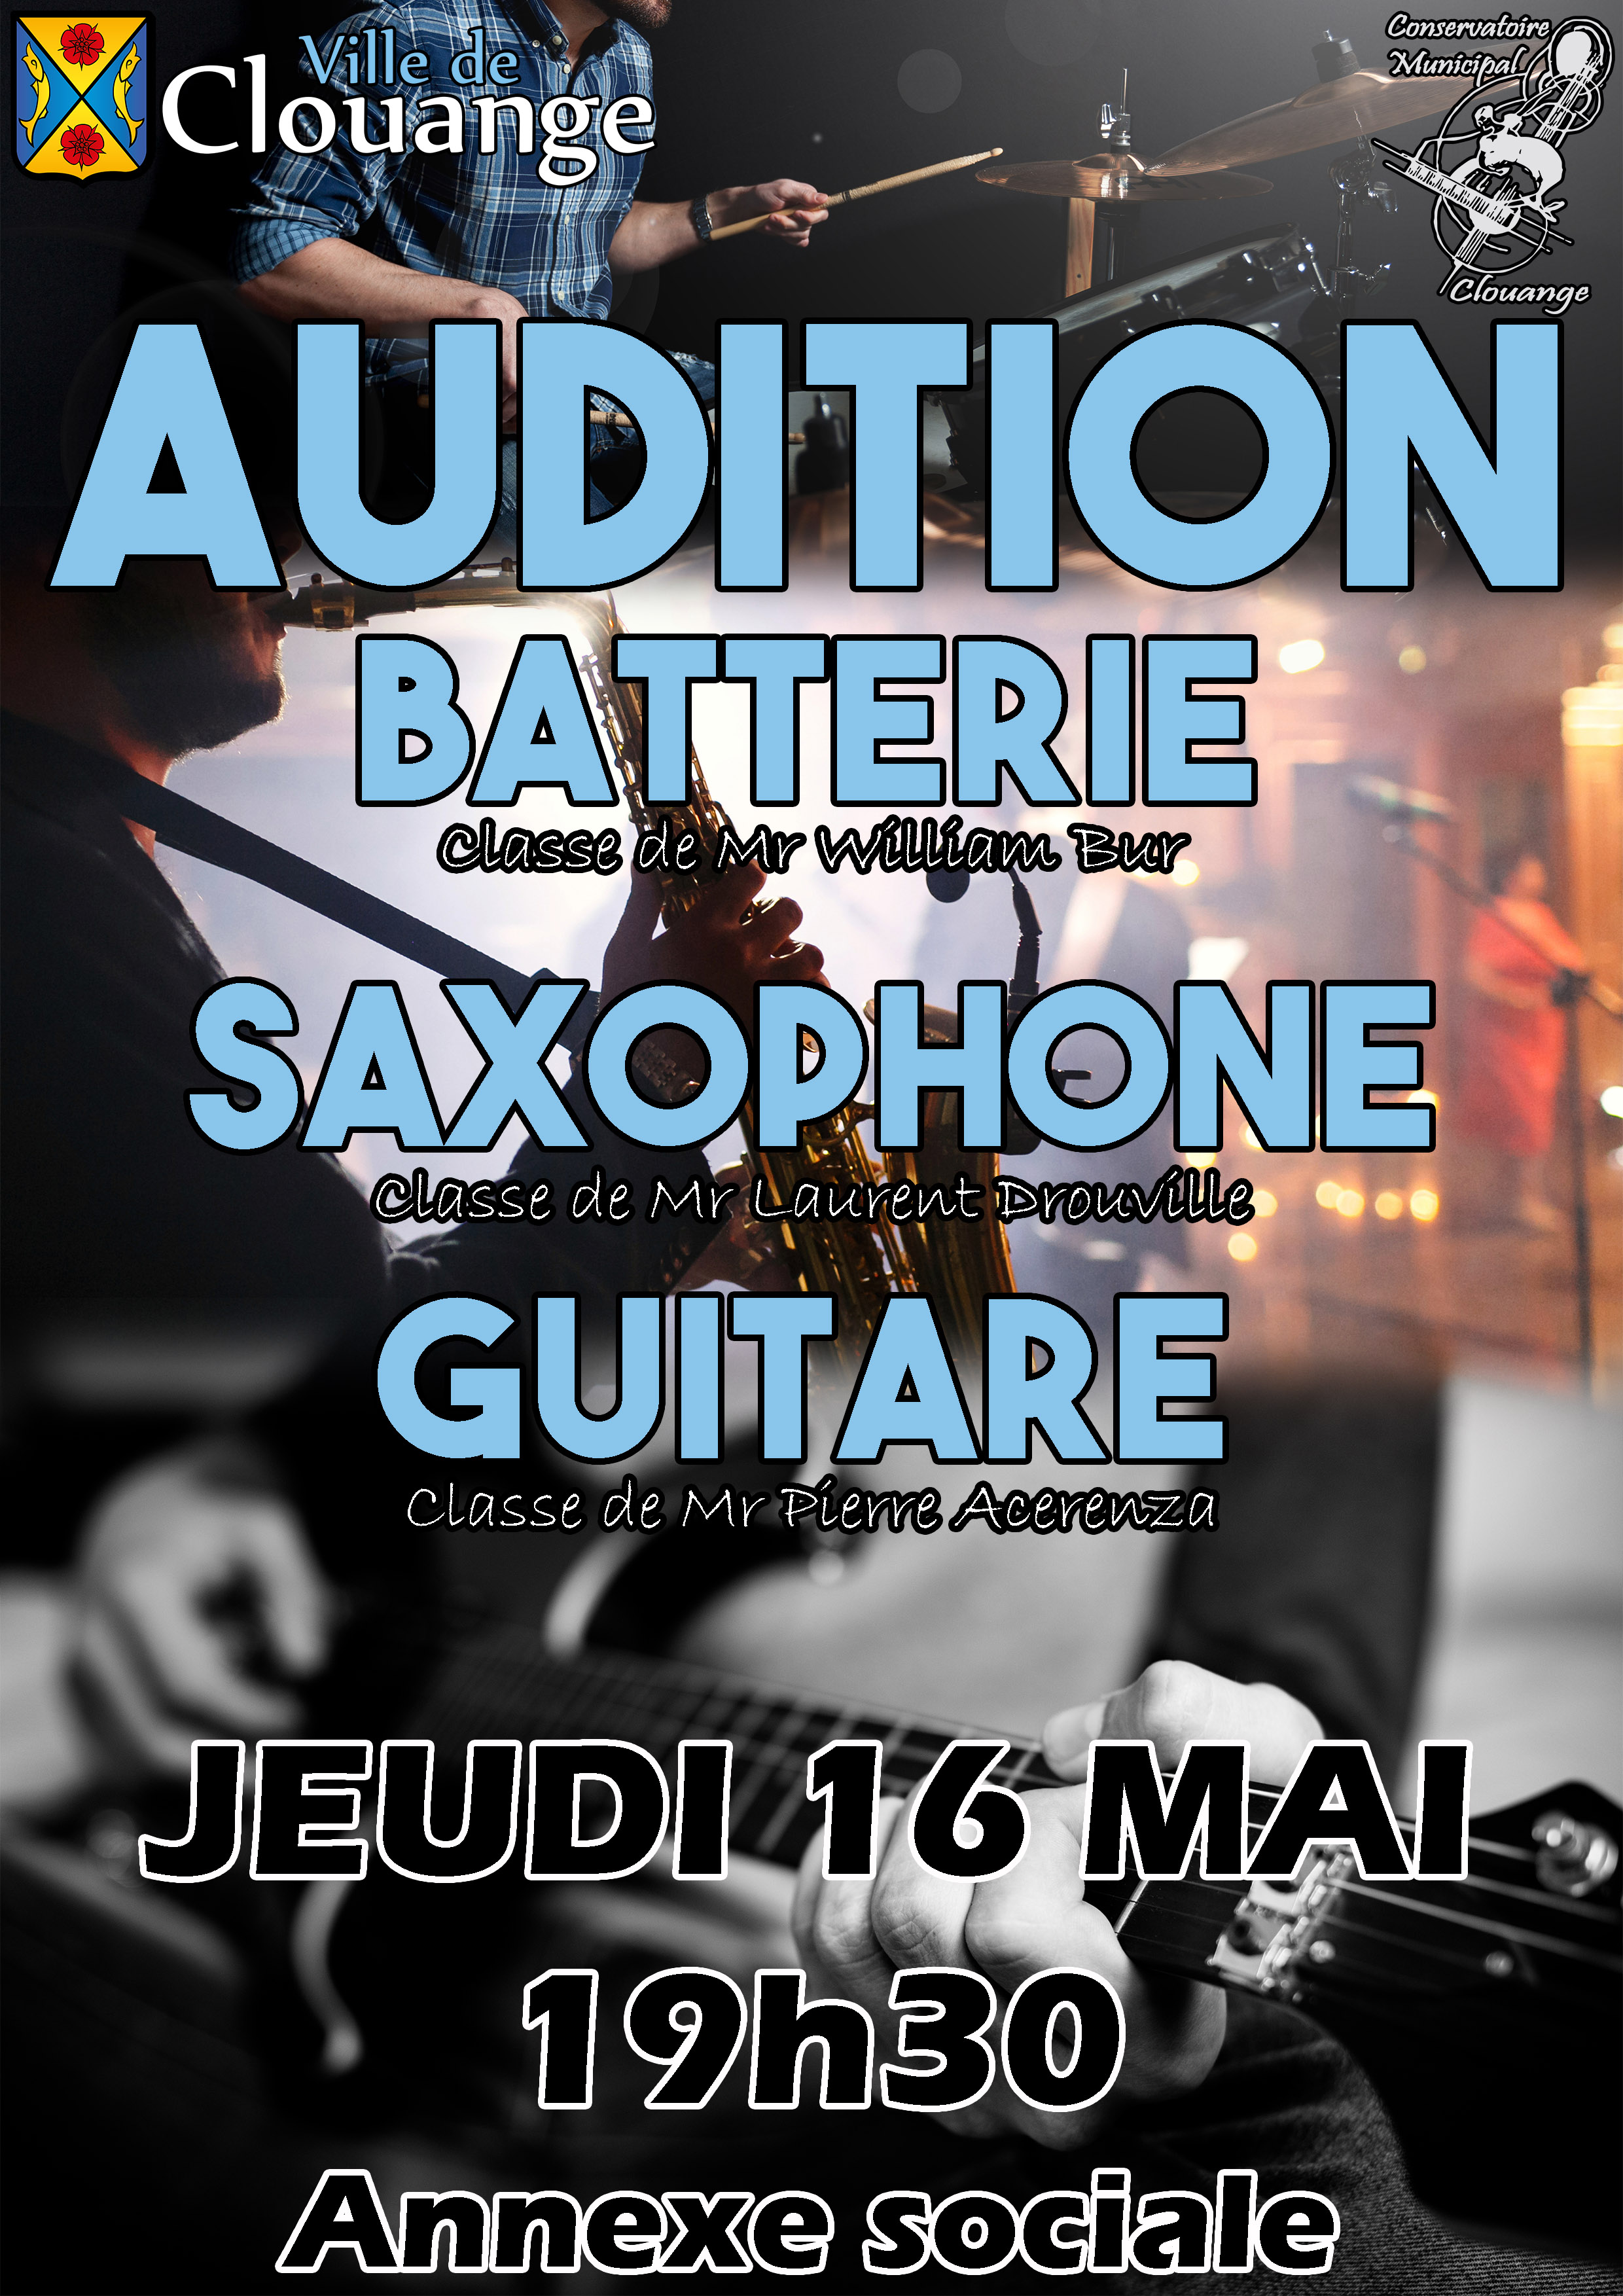 Audition de Batterie, Saxophone et Guitare